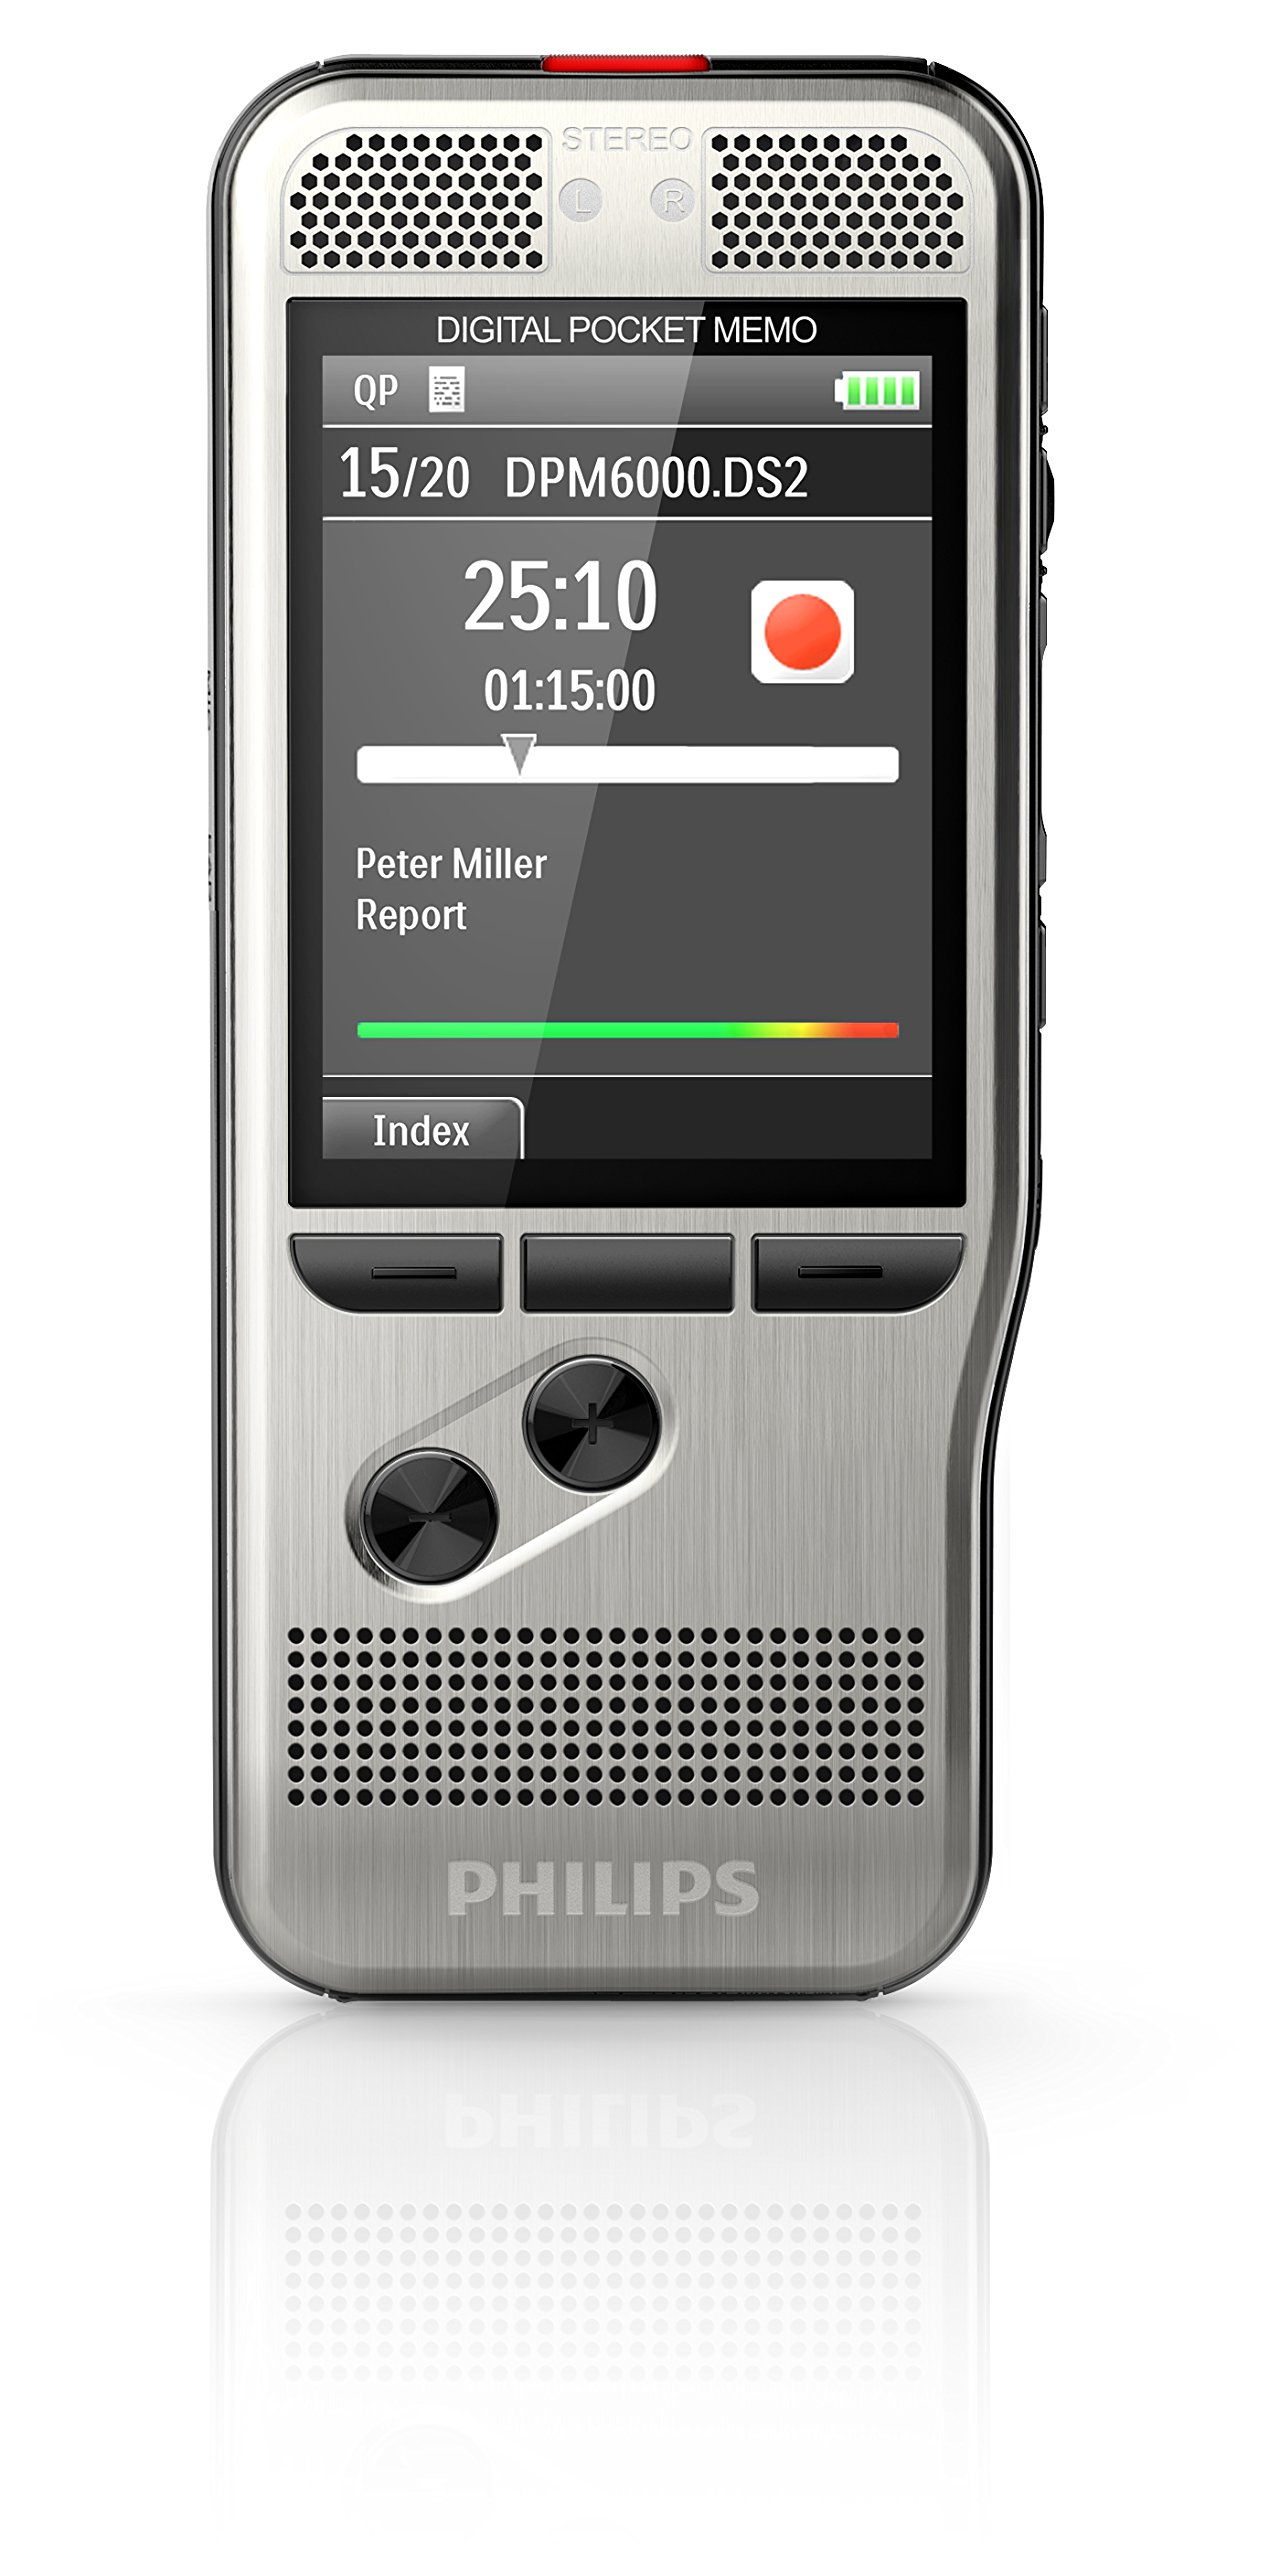 Philips DPM6000 Digital Pocket Memo Voice Recorder with Push Button Operation by PHILIPS